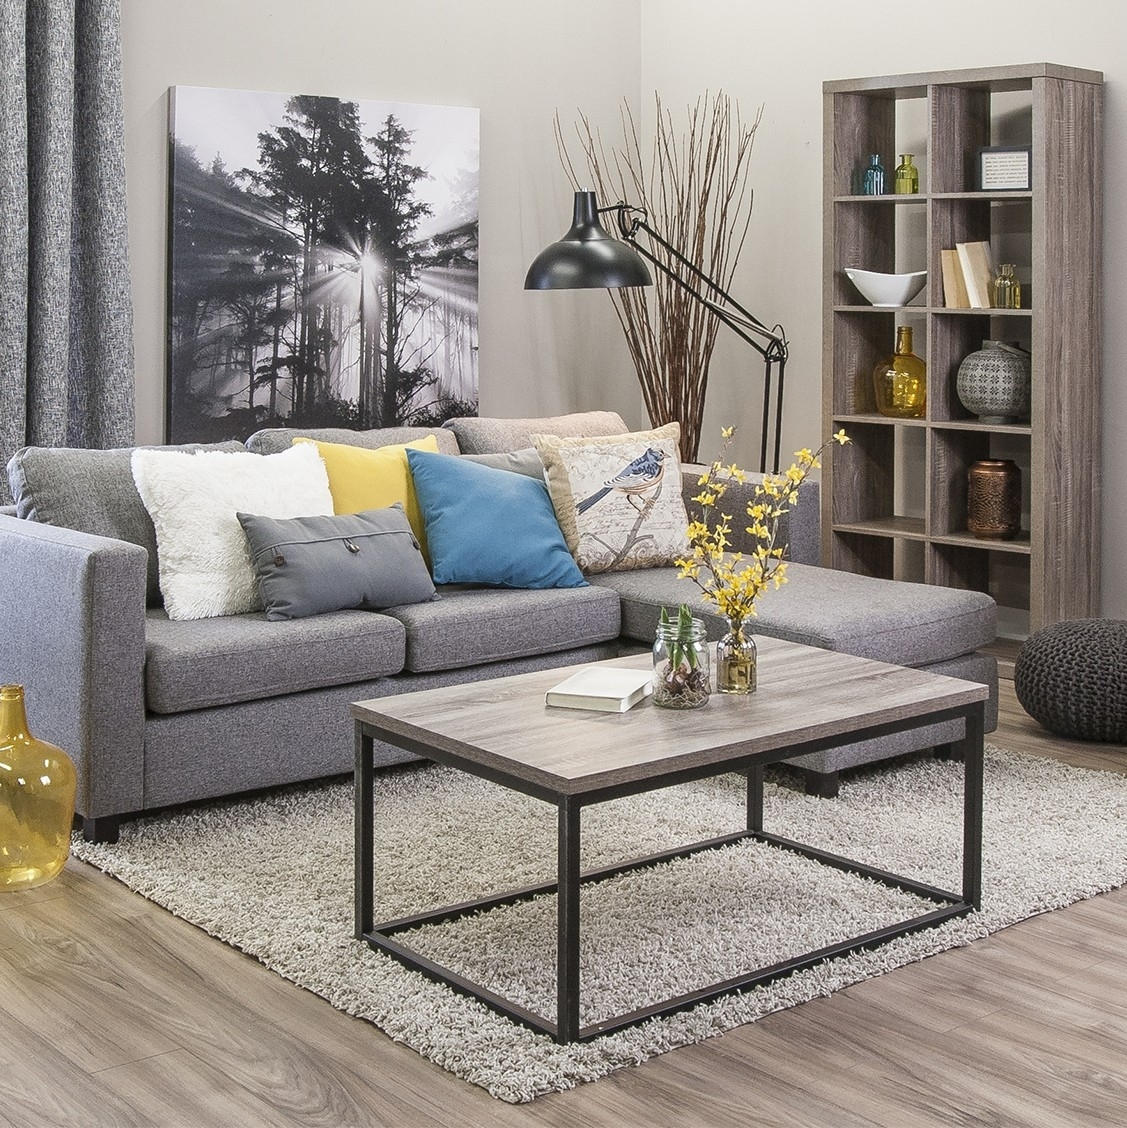 Casa Corner Sofa (Grey) For Jysk Sectional Sofas (View 4 of 10)